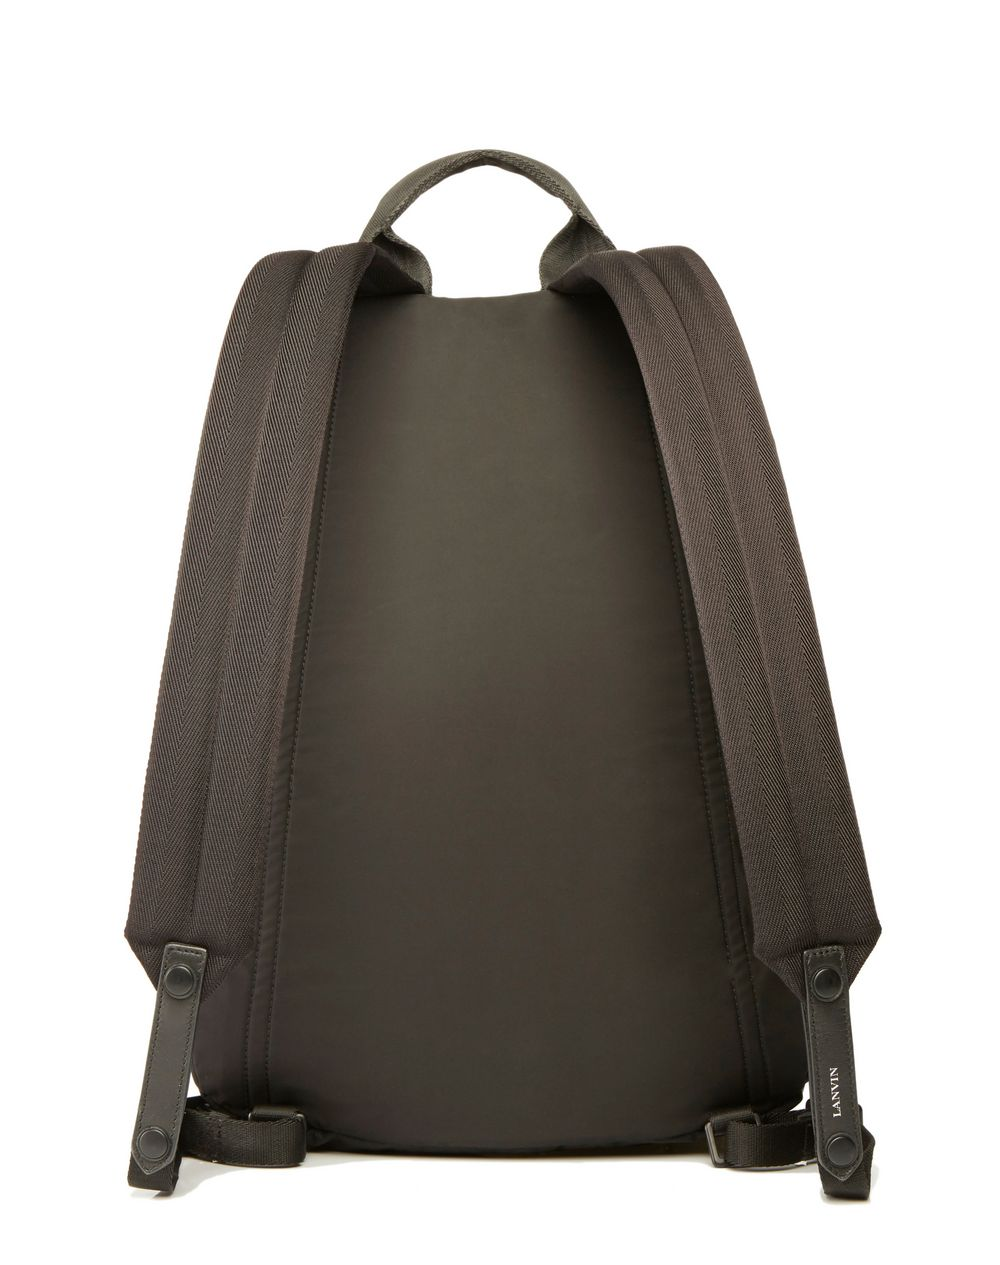 """PARADISE"" ZIPPED BACKPACK - Lanvin"